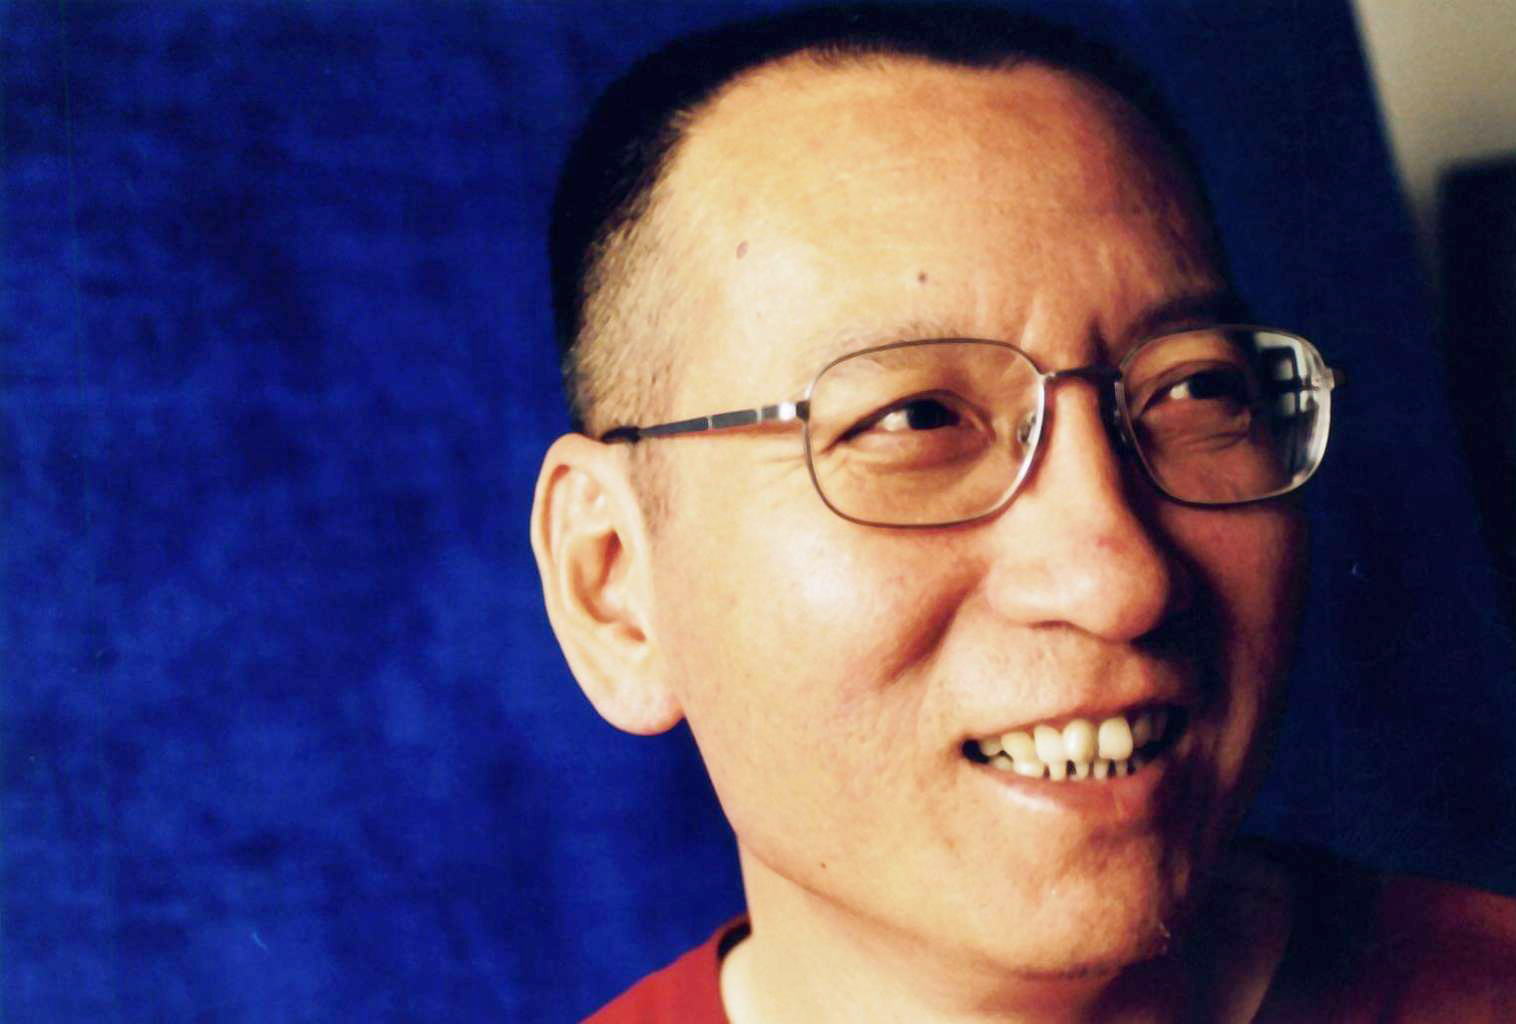 Mr Liu Xiaobo the imprisoned Chinese Nobel Peace Prize laureate, passed away on Thursday night.